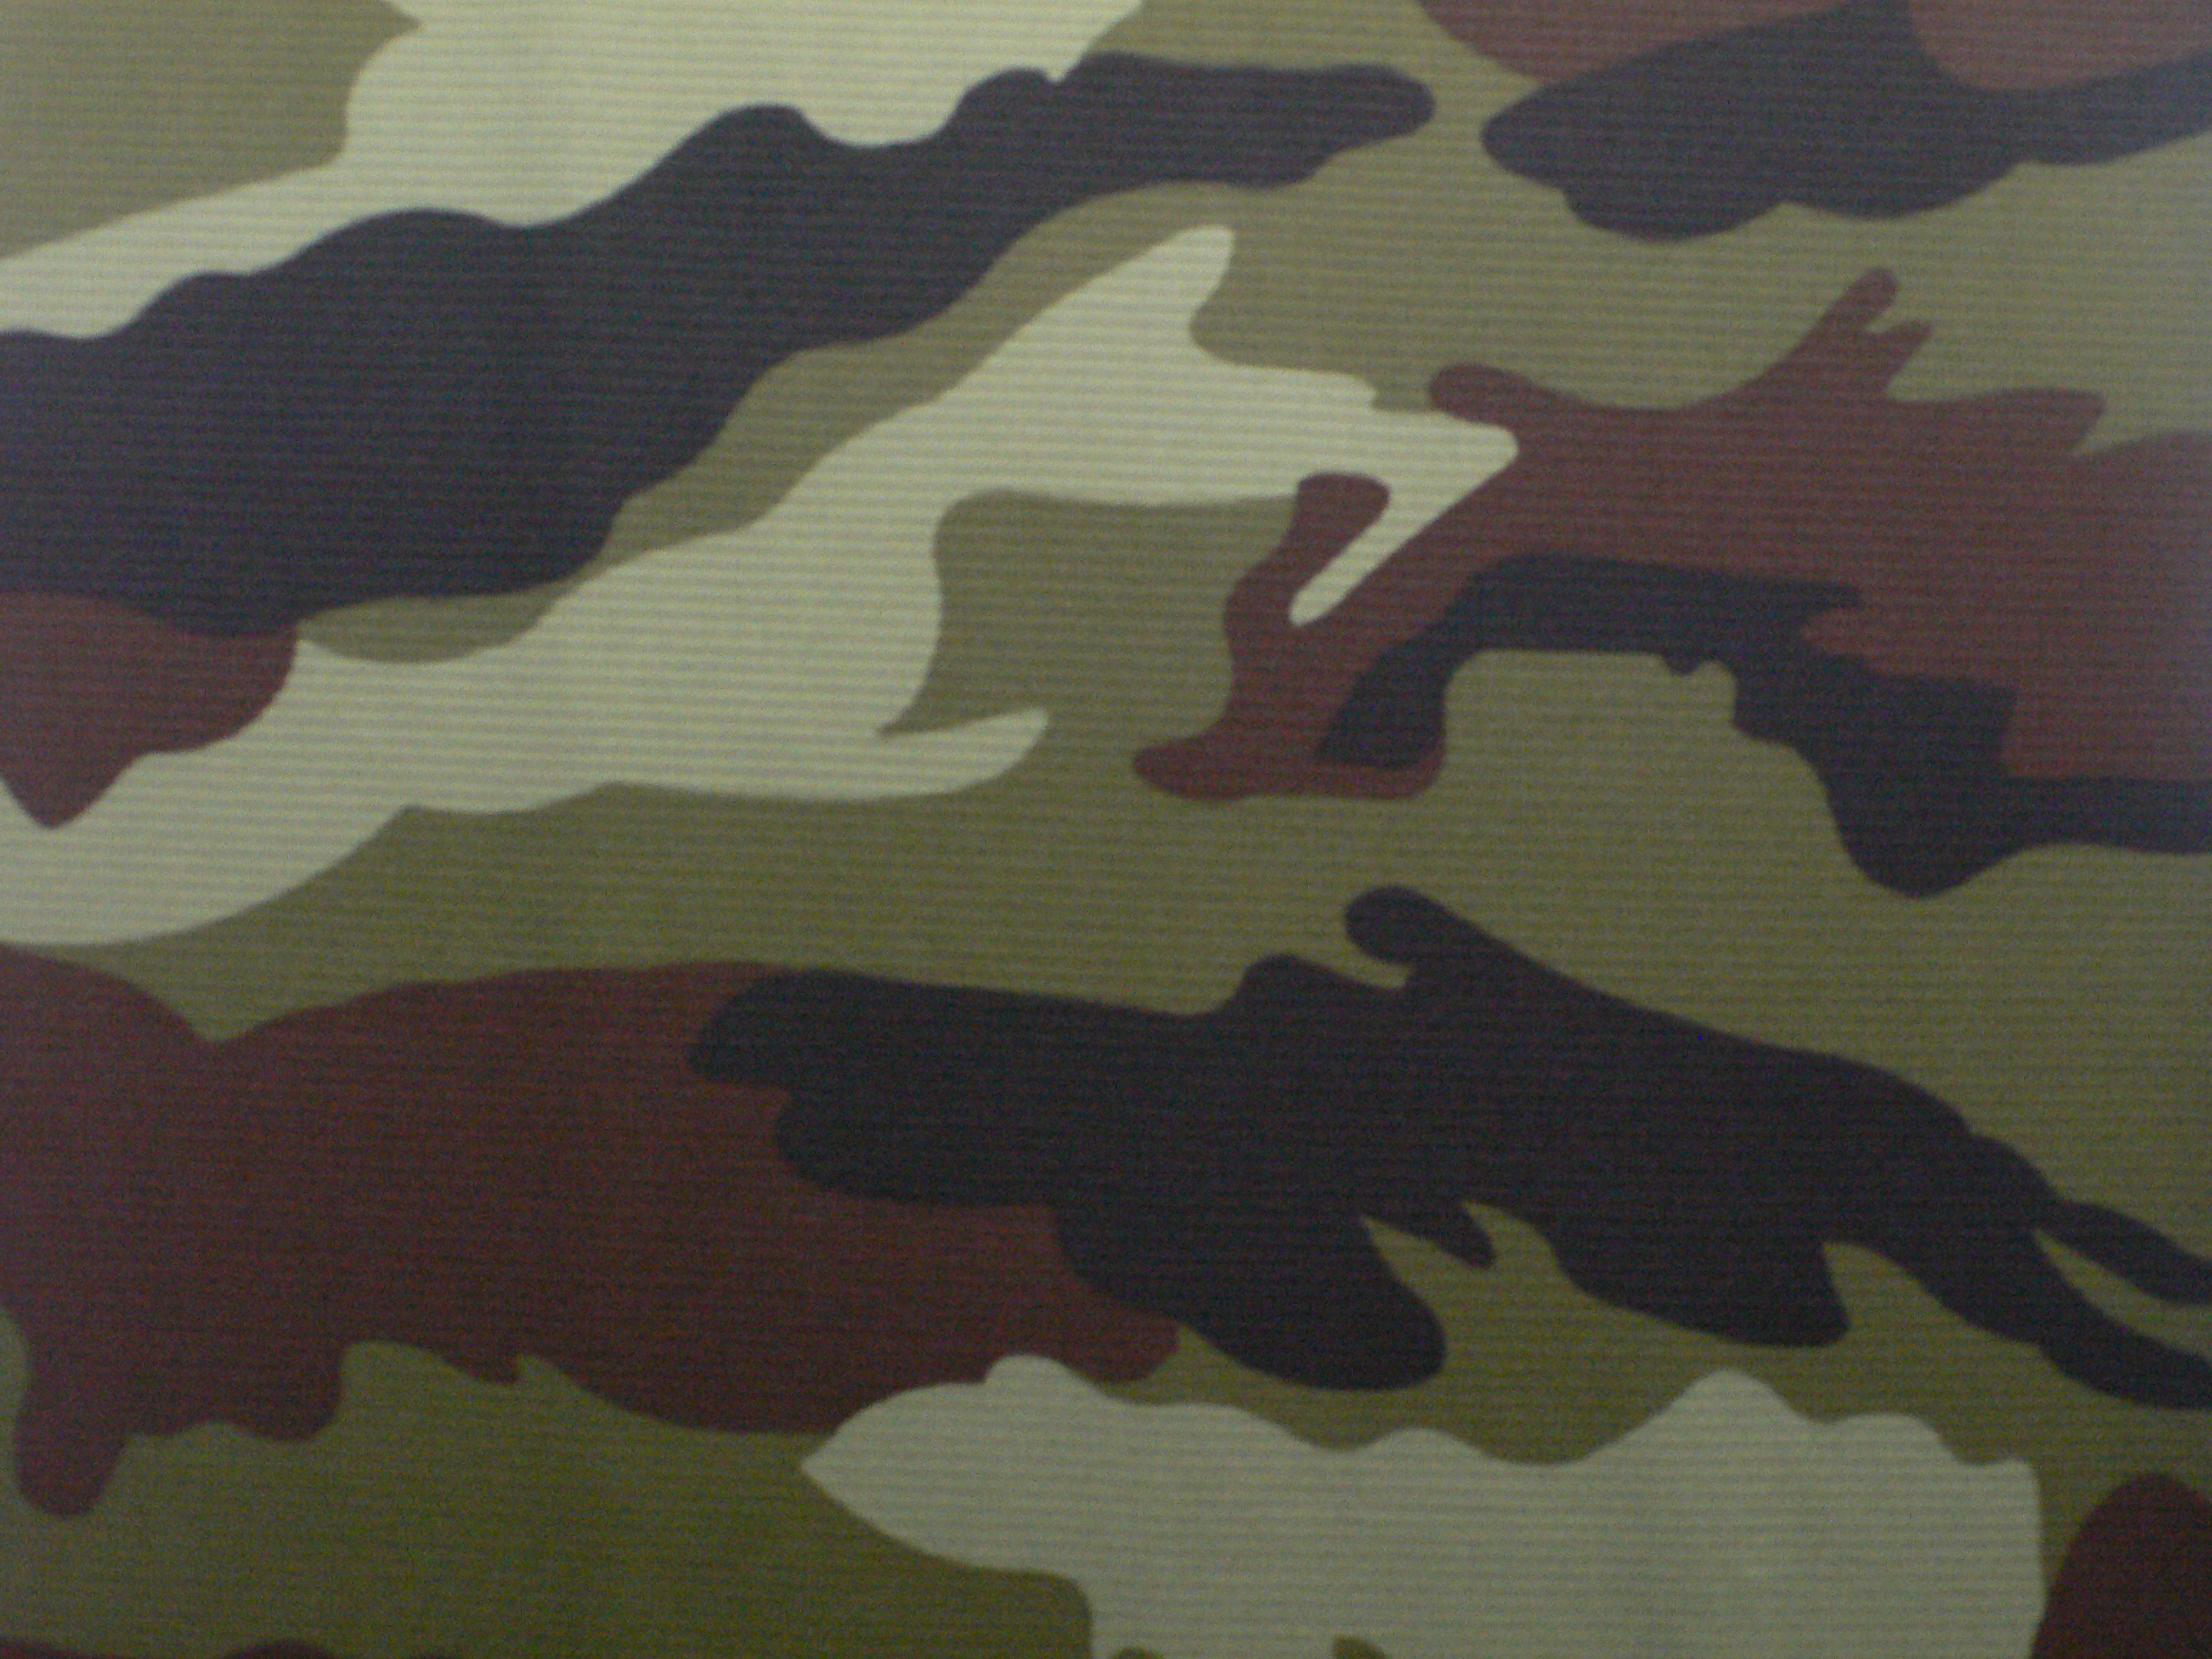 Ireland Polyester Knitting Camouflage Fabric for T-shirt